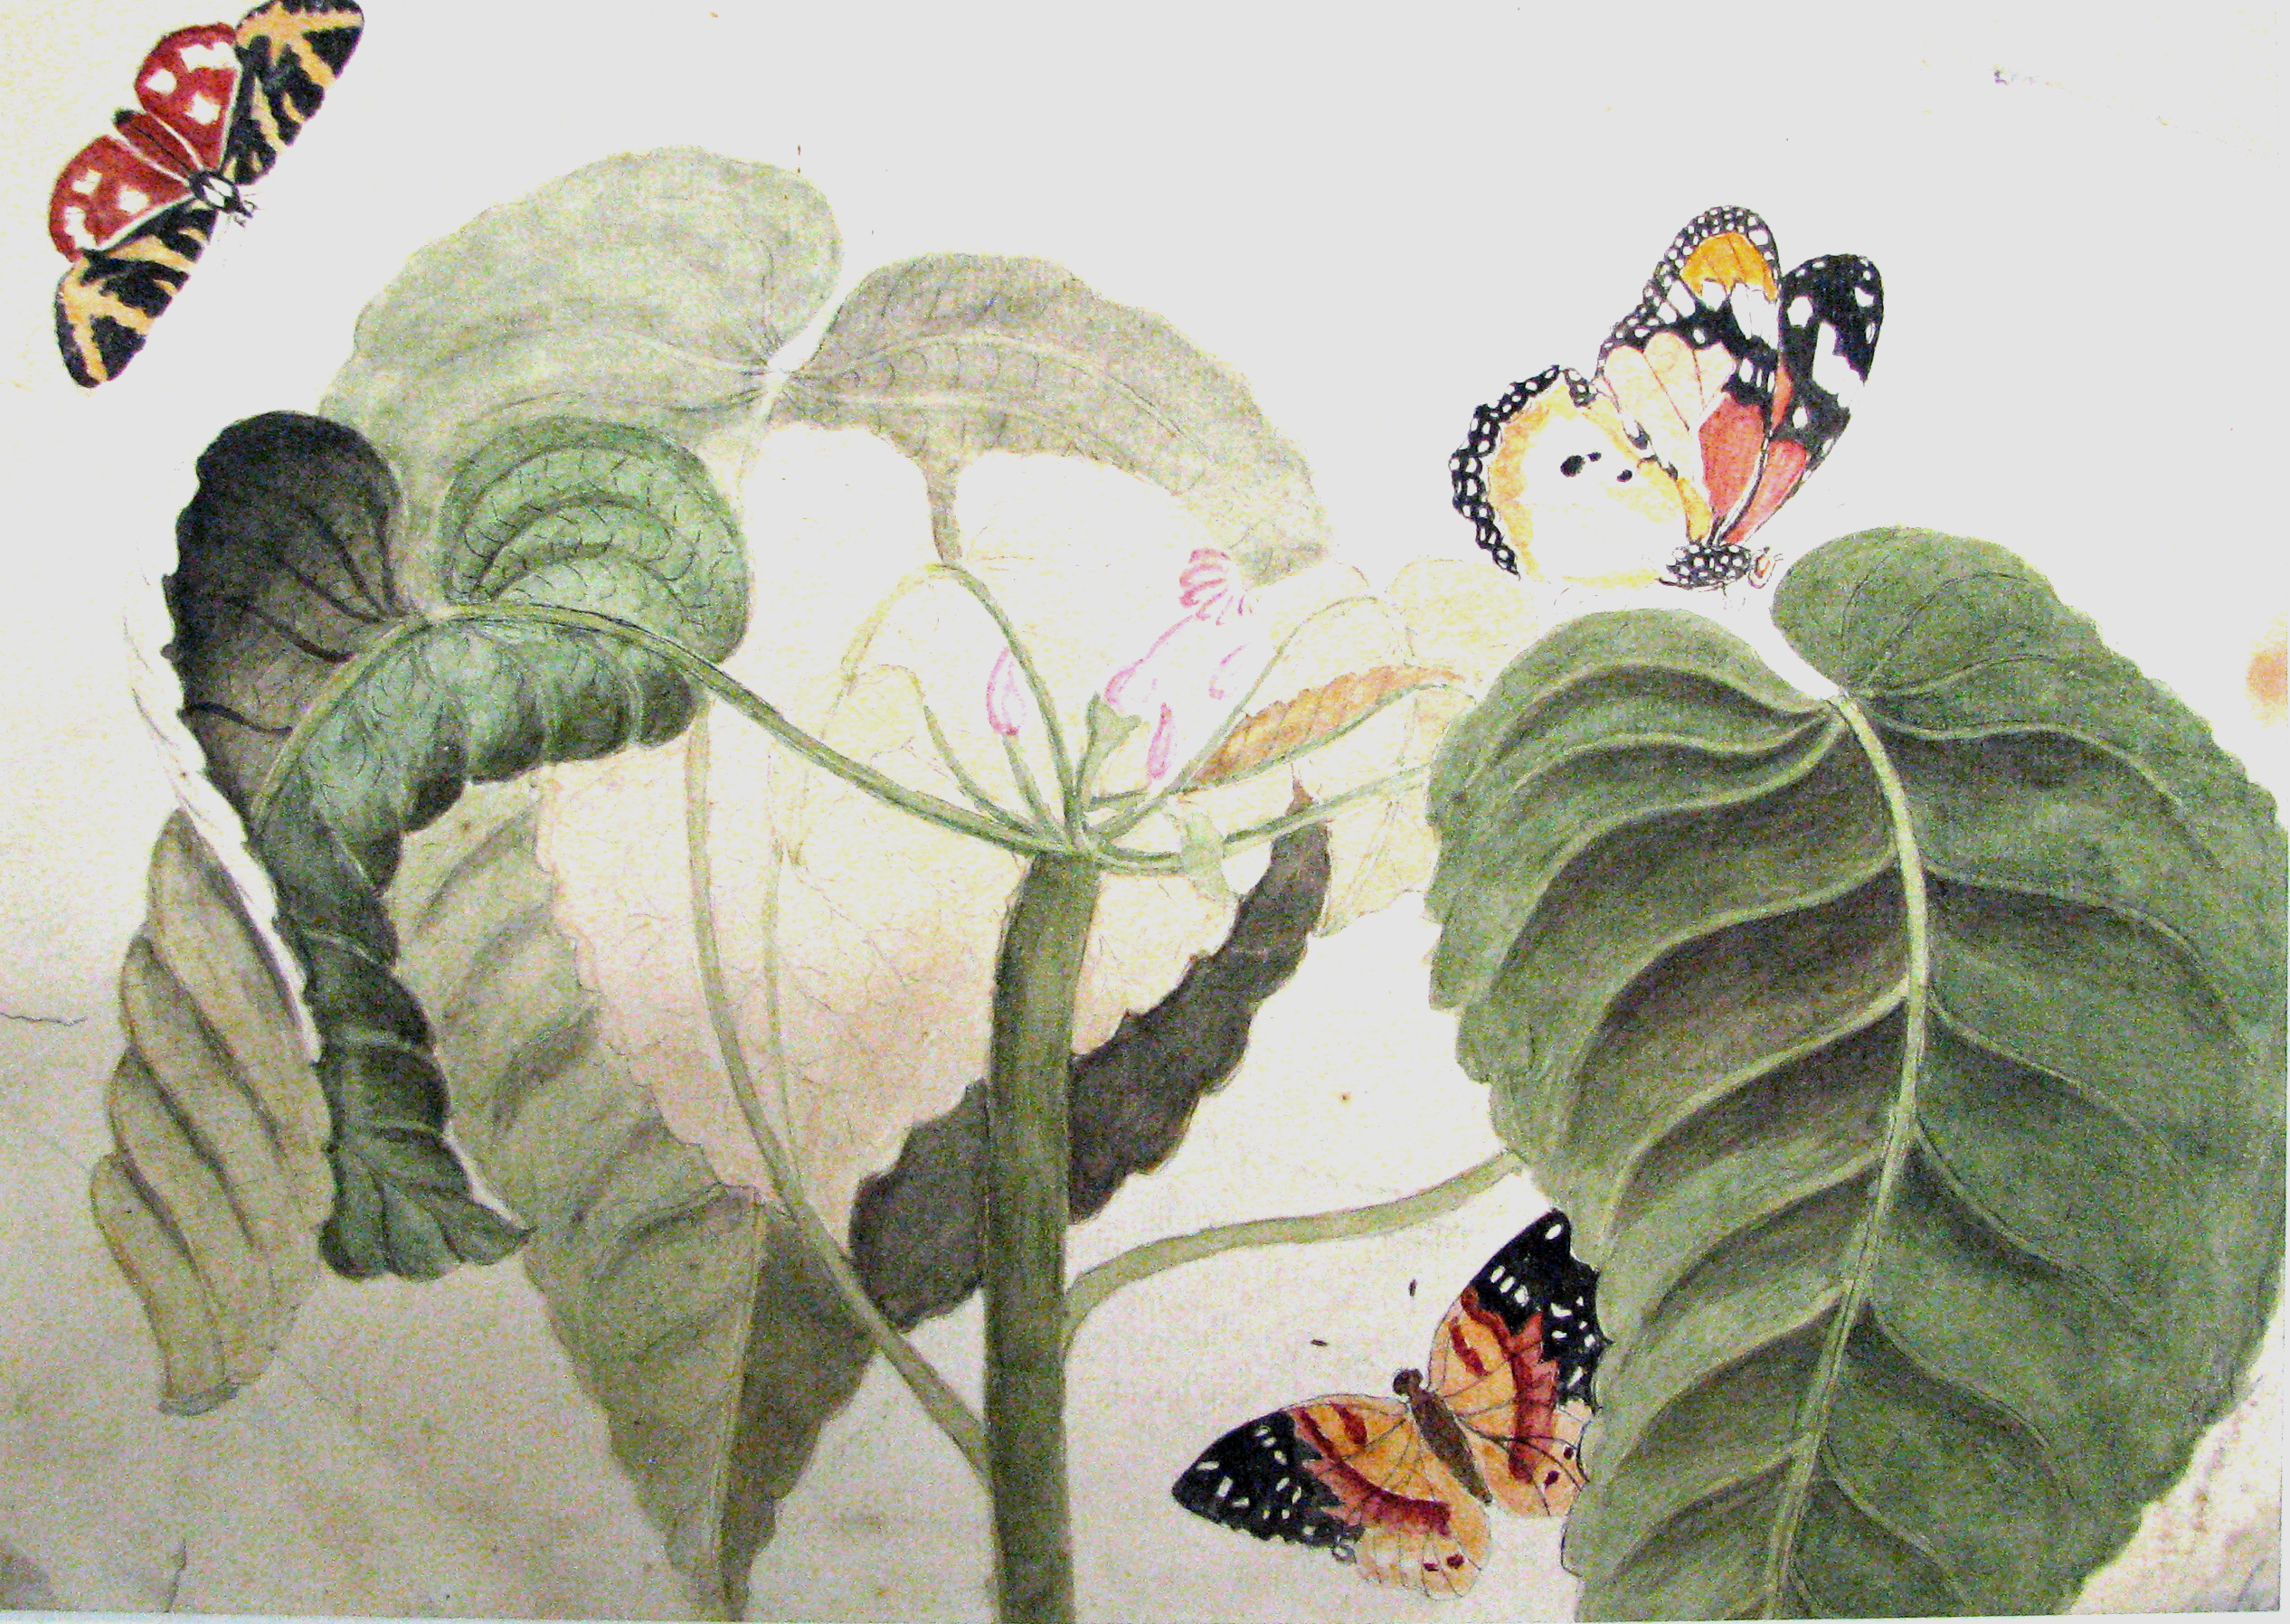 a%20watercolour%20drawing%20of%20%22Colour%20Study-Butterflies%22%20attributed%20to%20Margaret%20or%20Catherine%20Reynolds